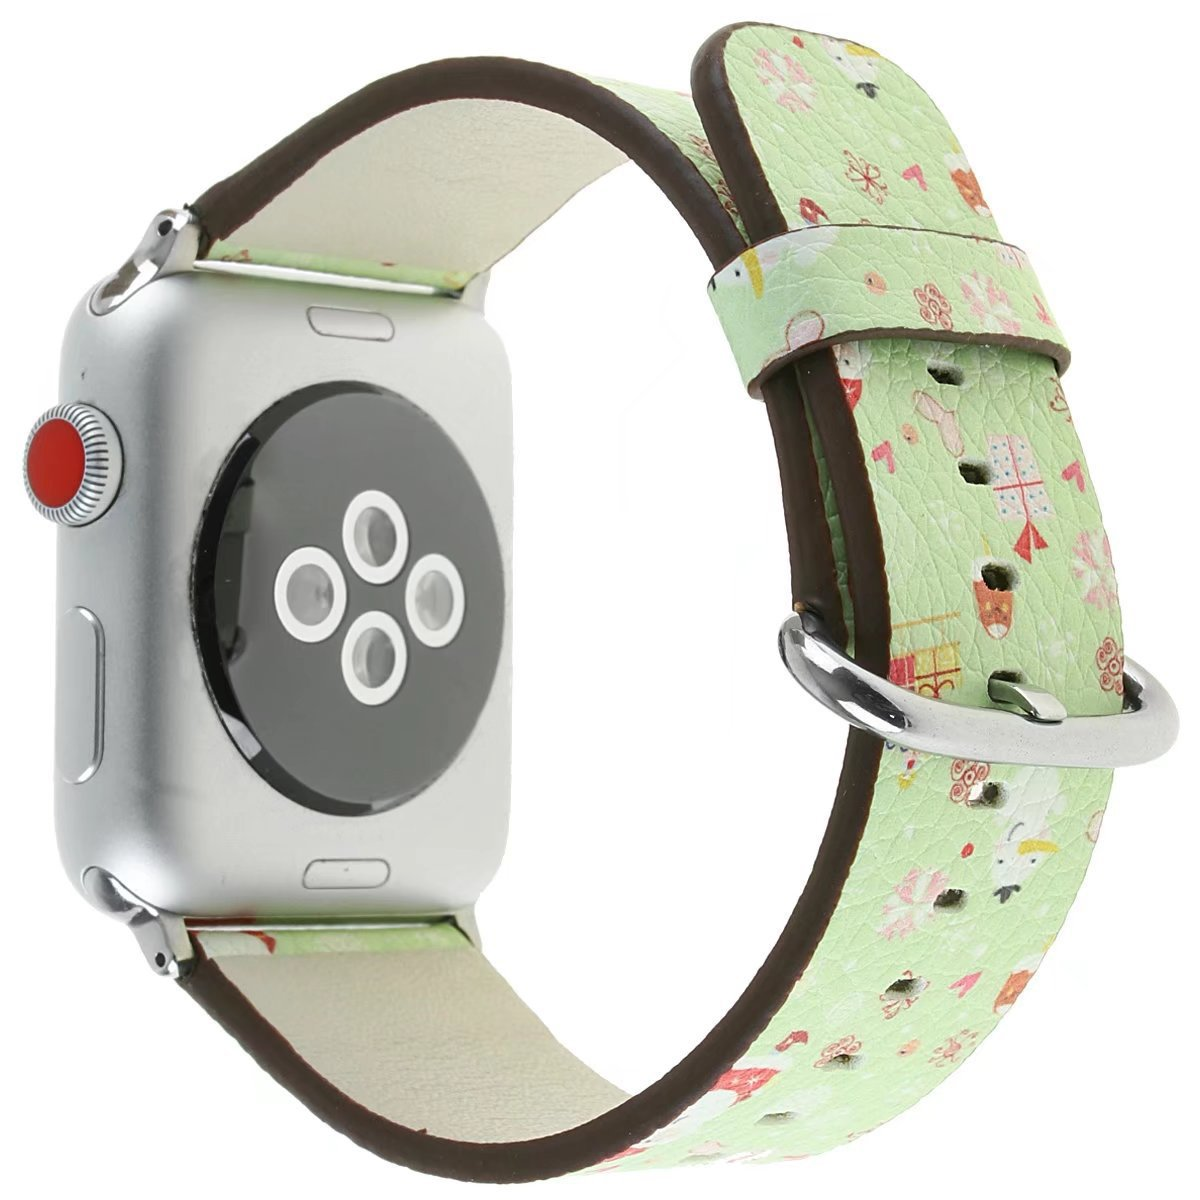 PU Leather Band for Apple Watch 38mm Band Women Men iwatch Replacement Wristband